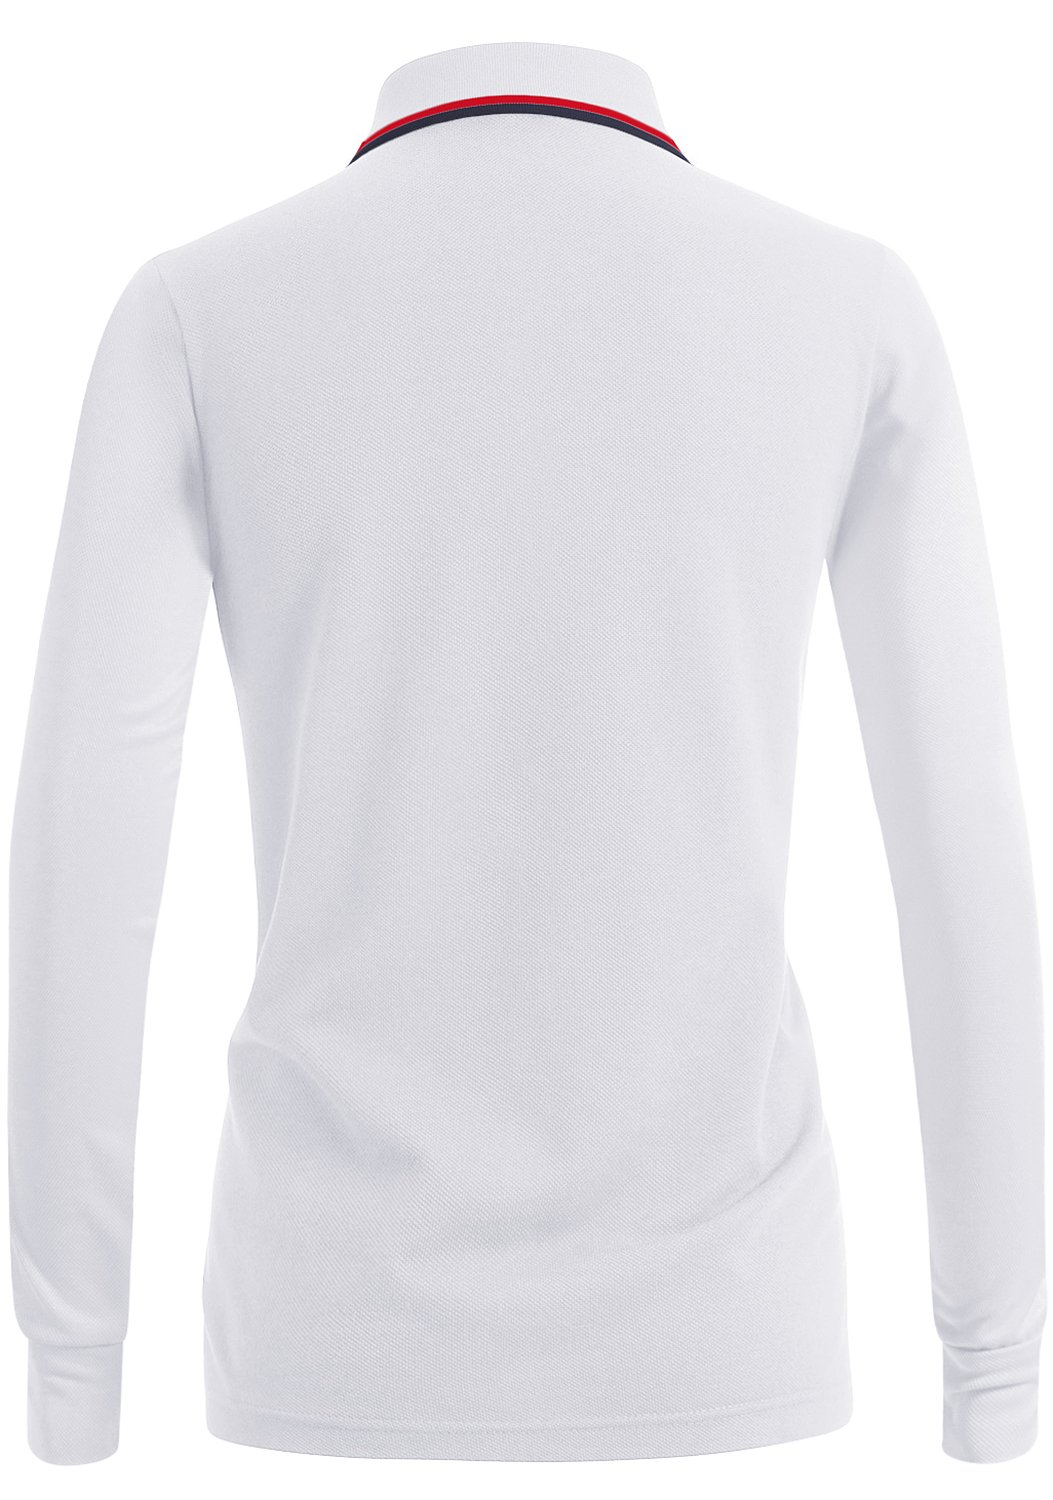 CLOVERY Women's Classic Fit Long Sleeve PK Polo Shirts White US XXL/Tag XXXL by CLOVERY (Image #3)